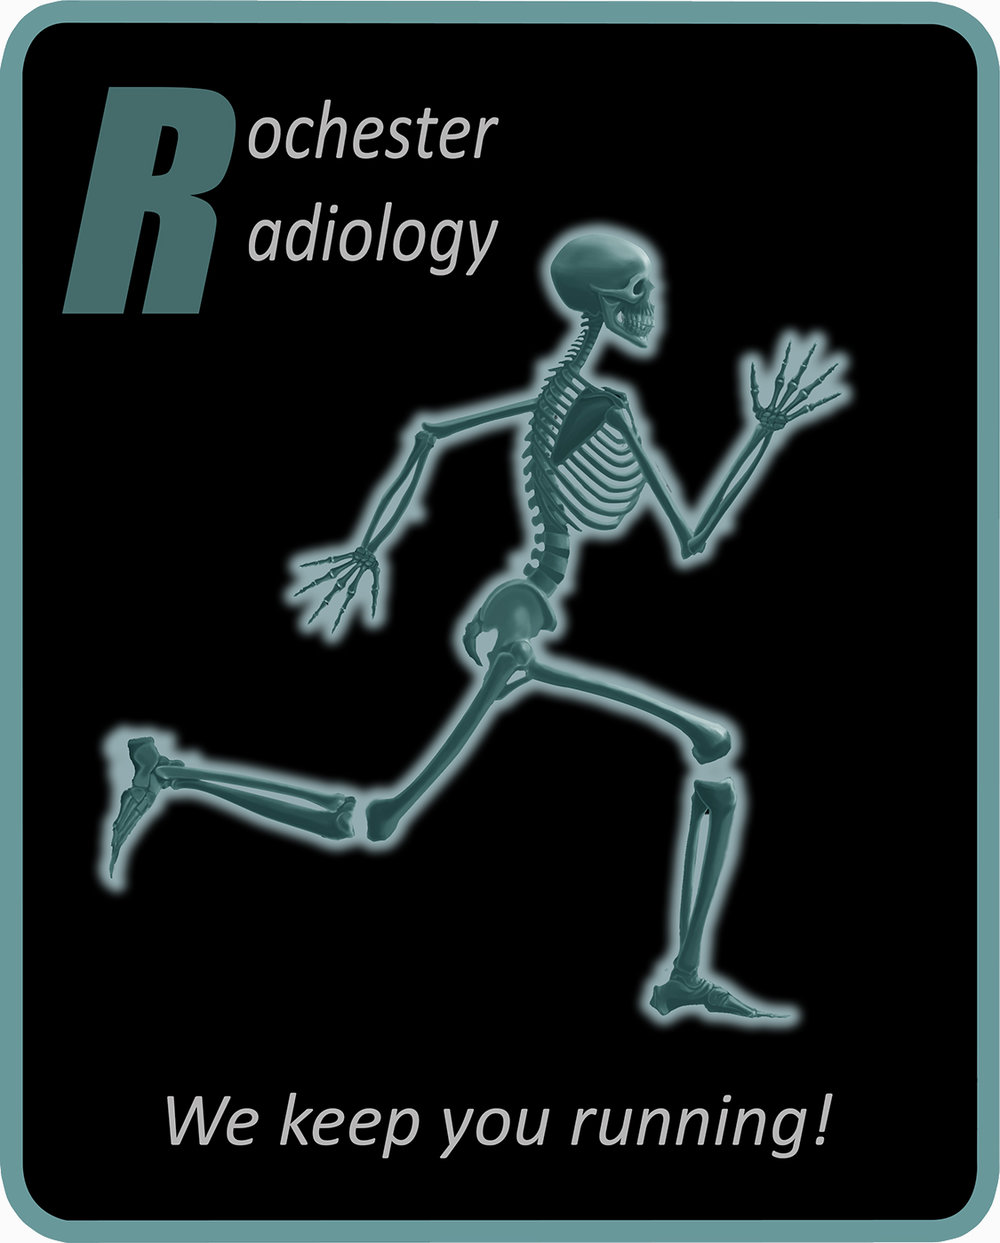 Rochester Radiology t shirt_small_logoonly.jpg